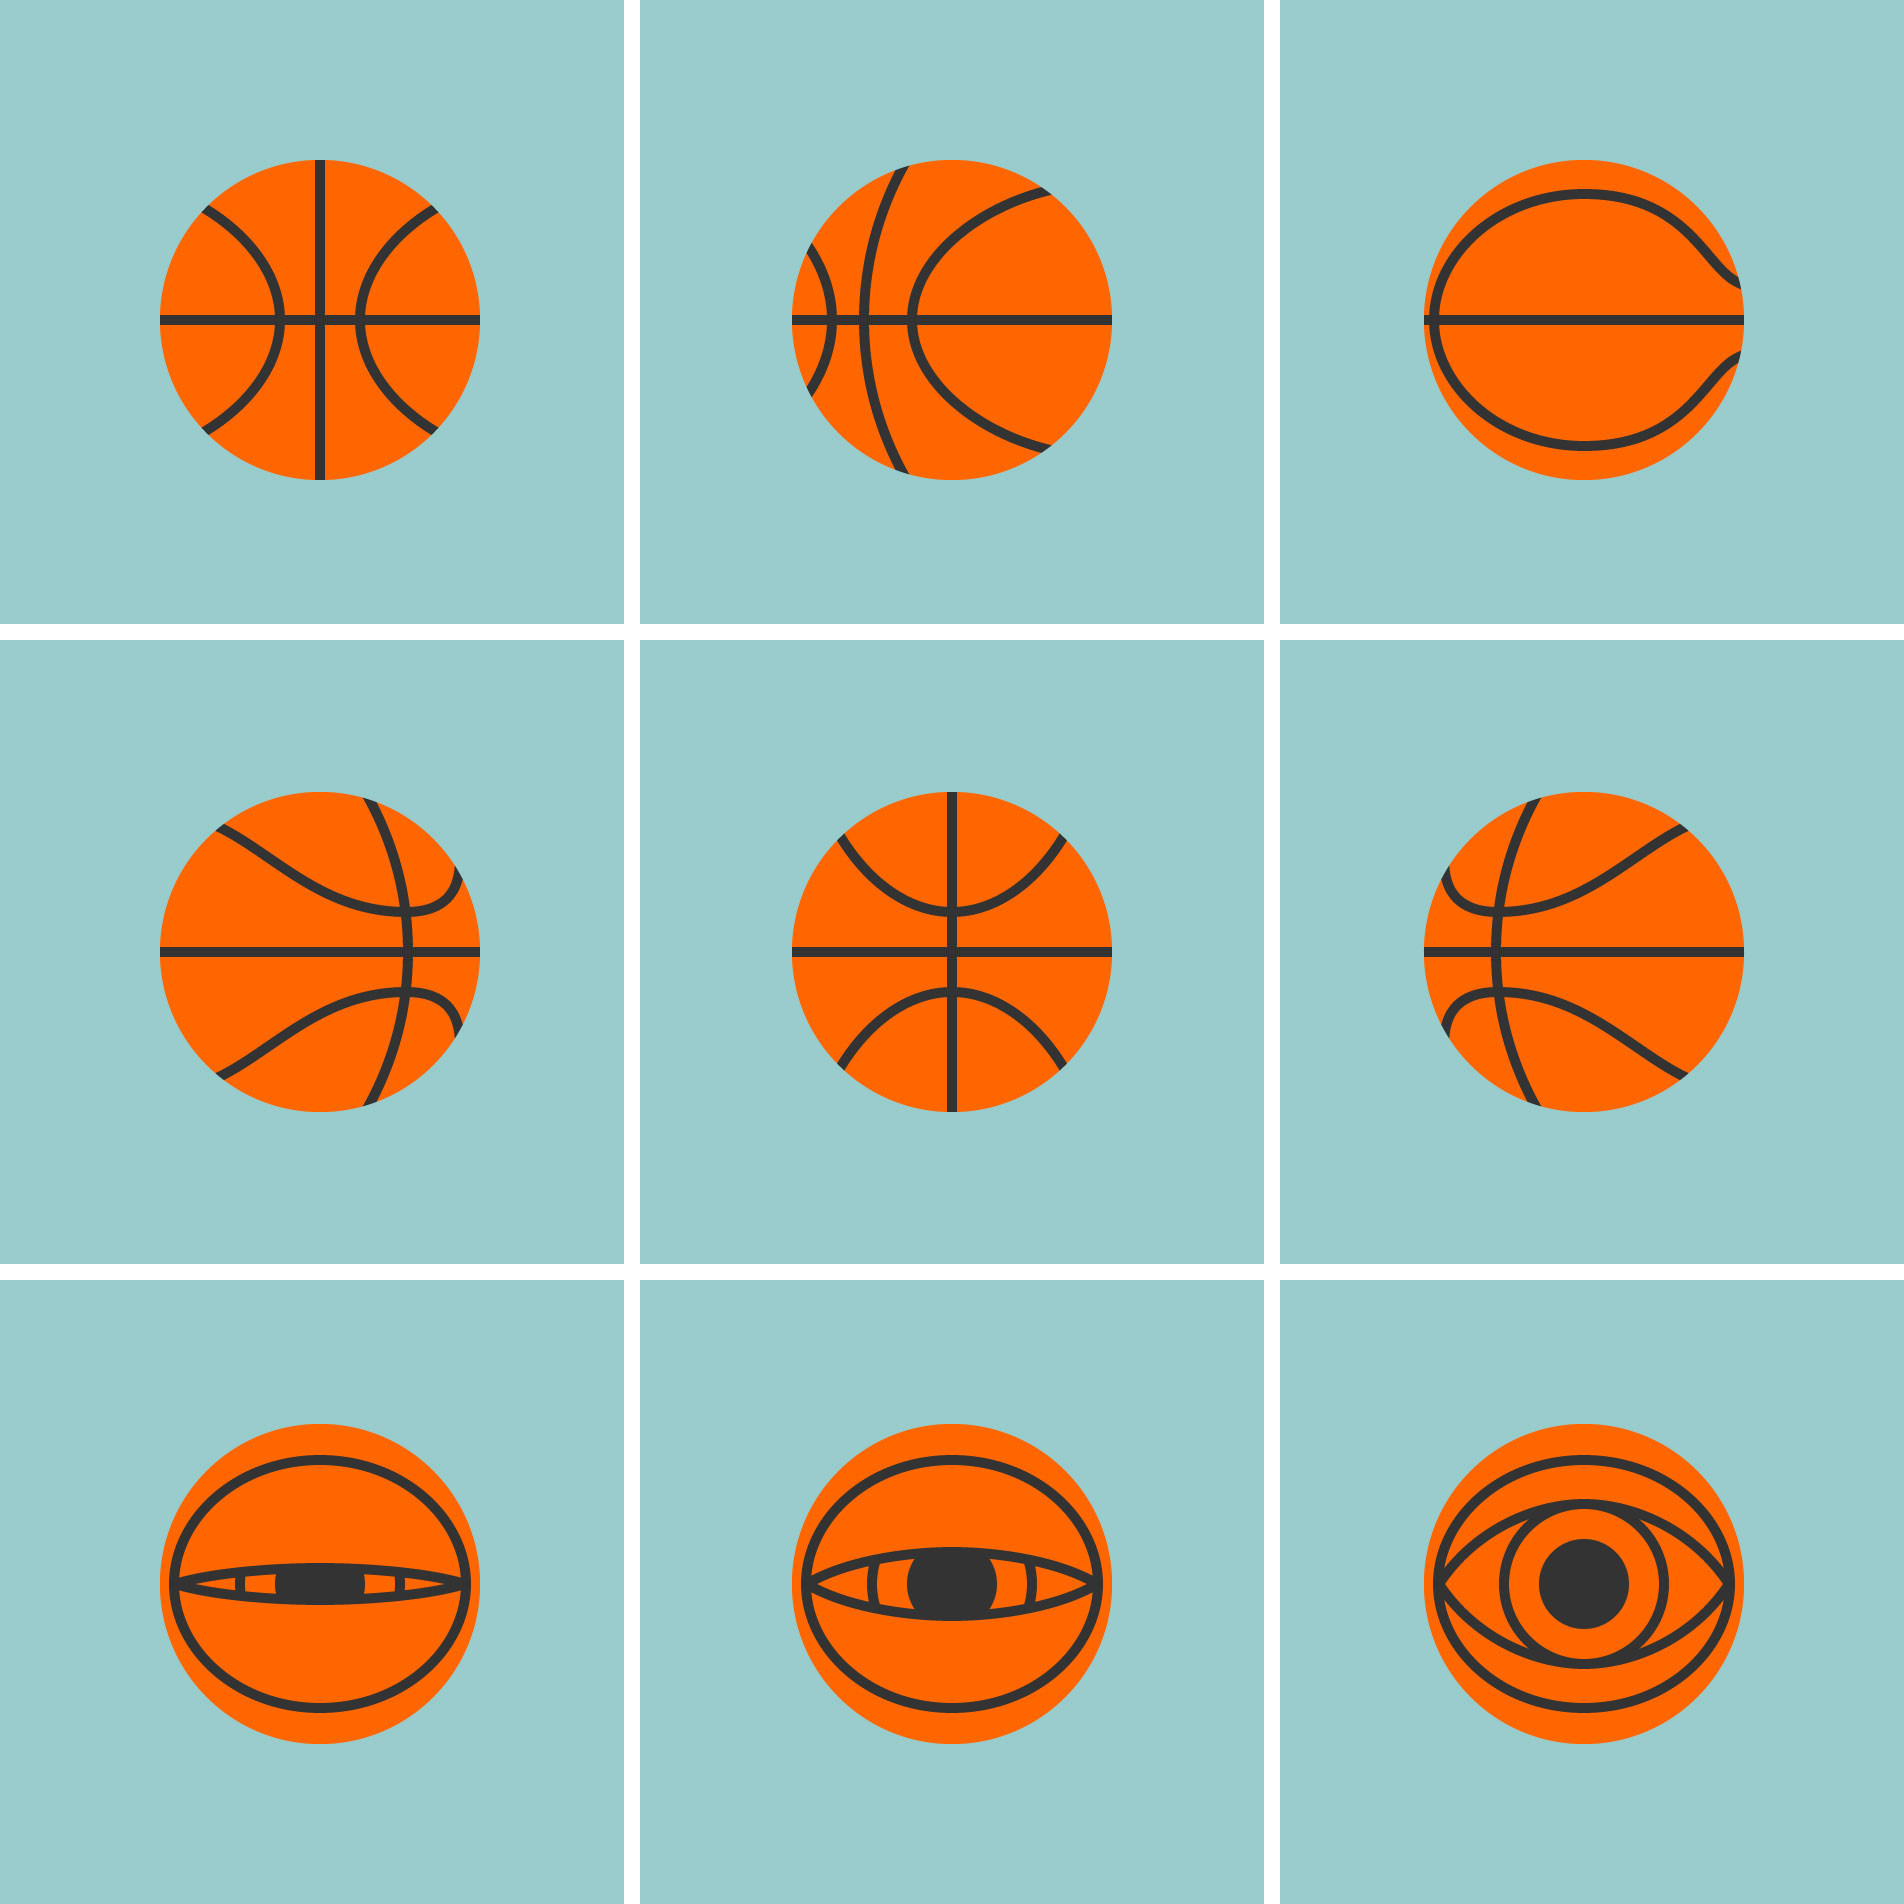 Illustration of a basketball rotating and then morphing into an open eye in 9 stages